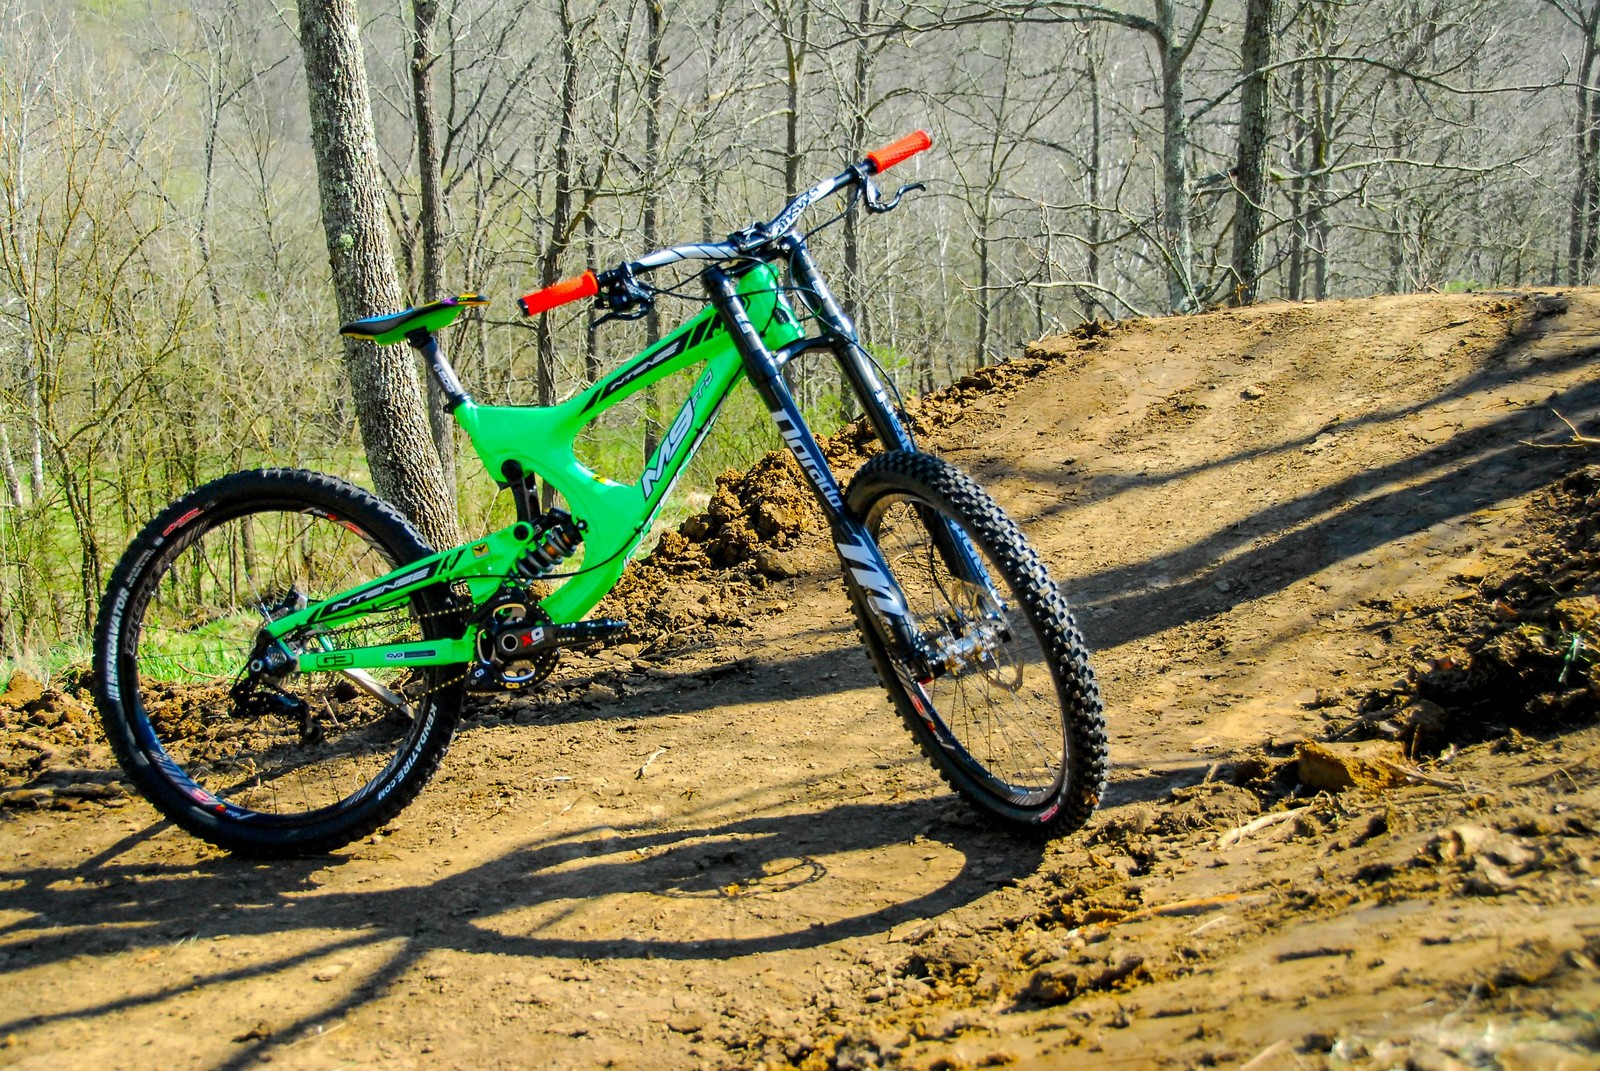 Dave's 2013 Flo Green Intense M9